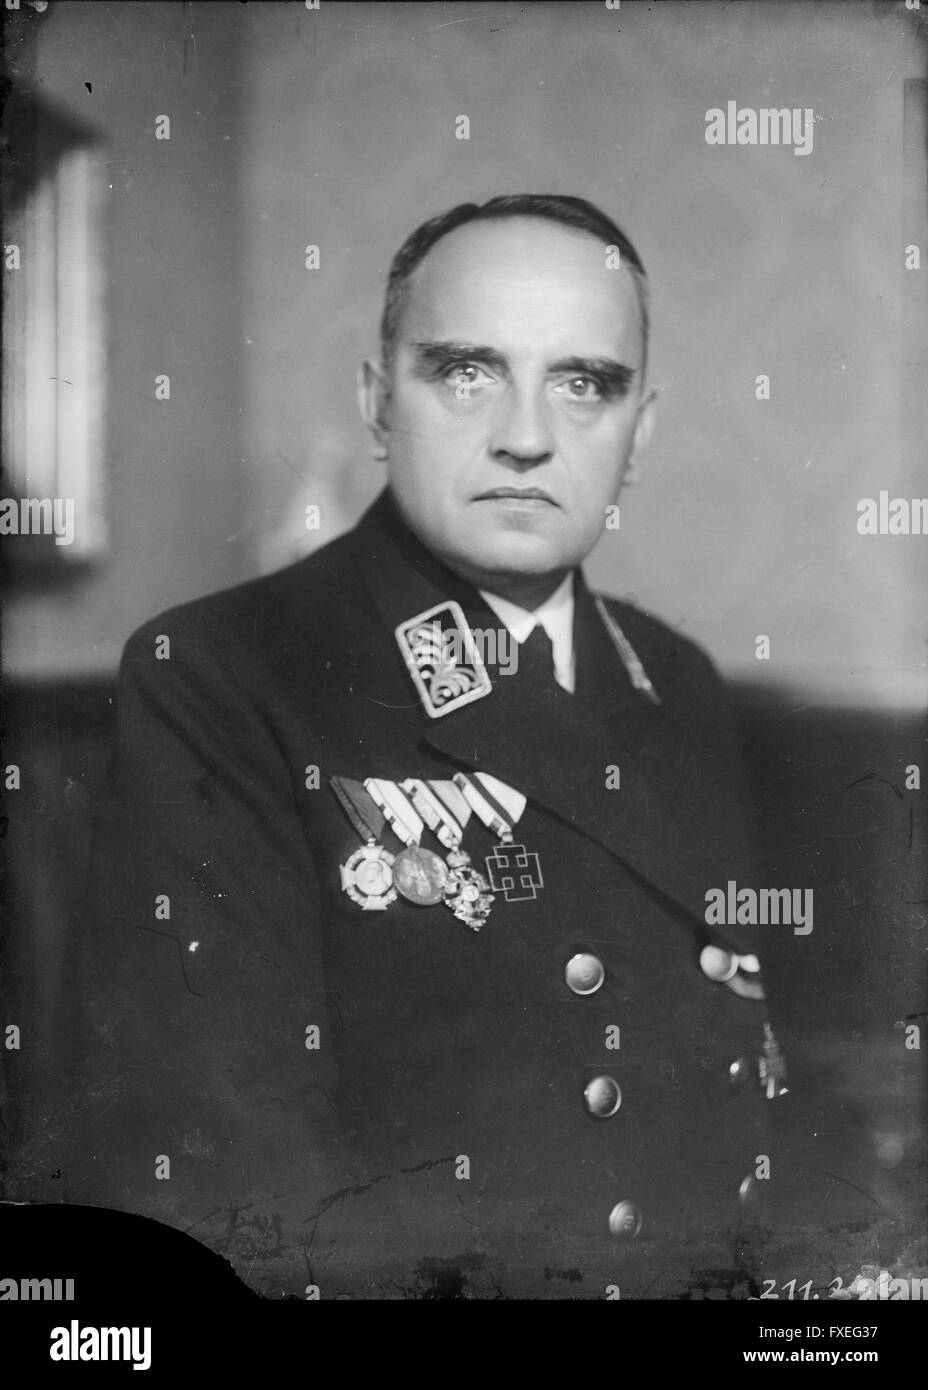 Michael Skubl in Polizeiuniform - Stock Image